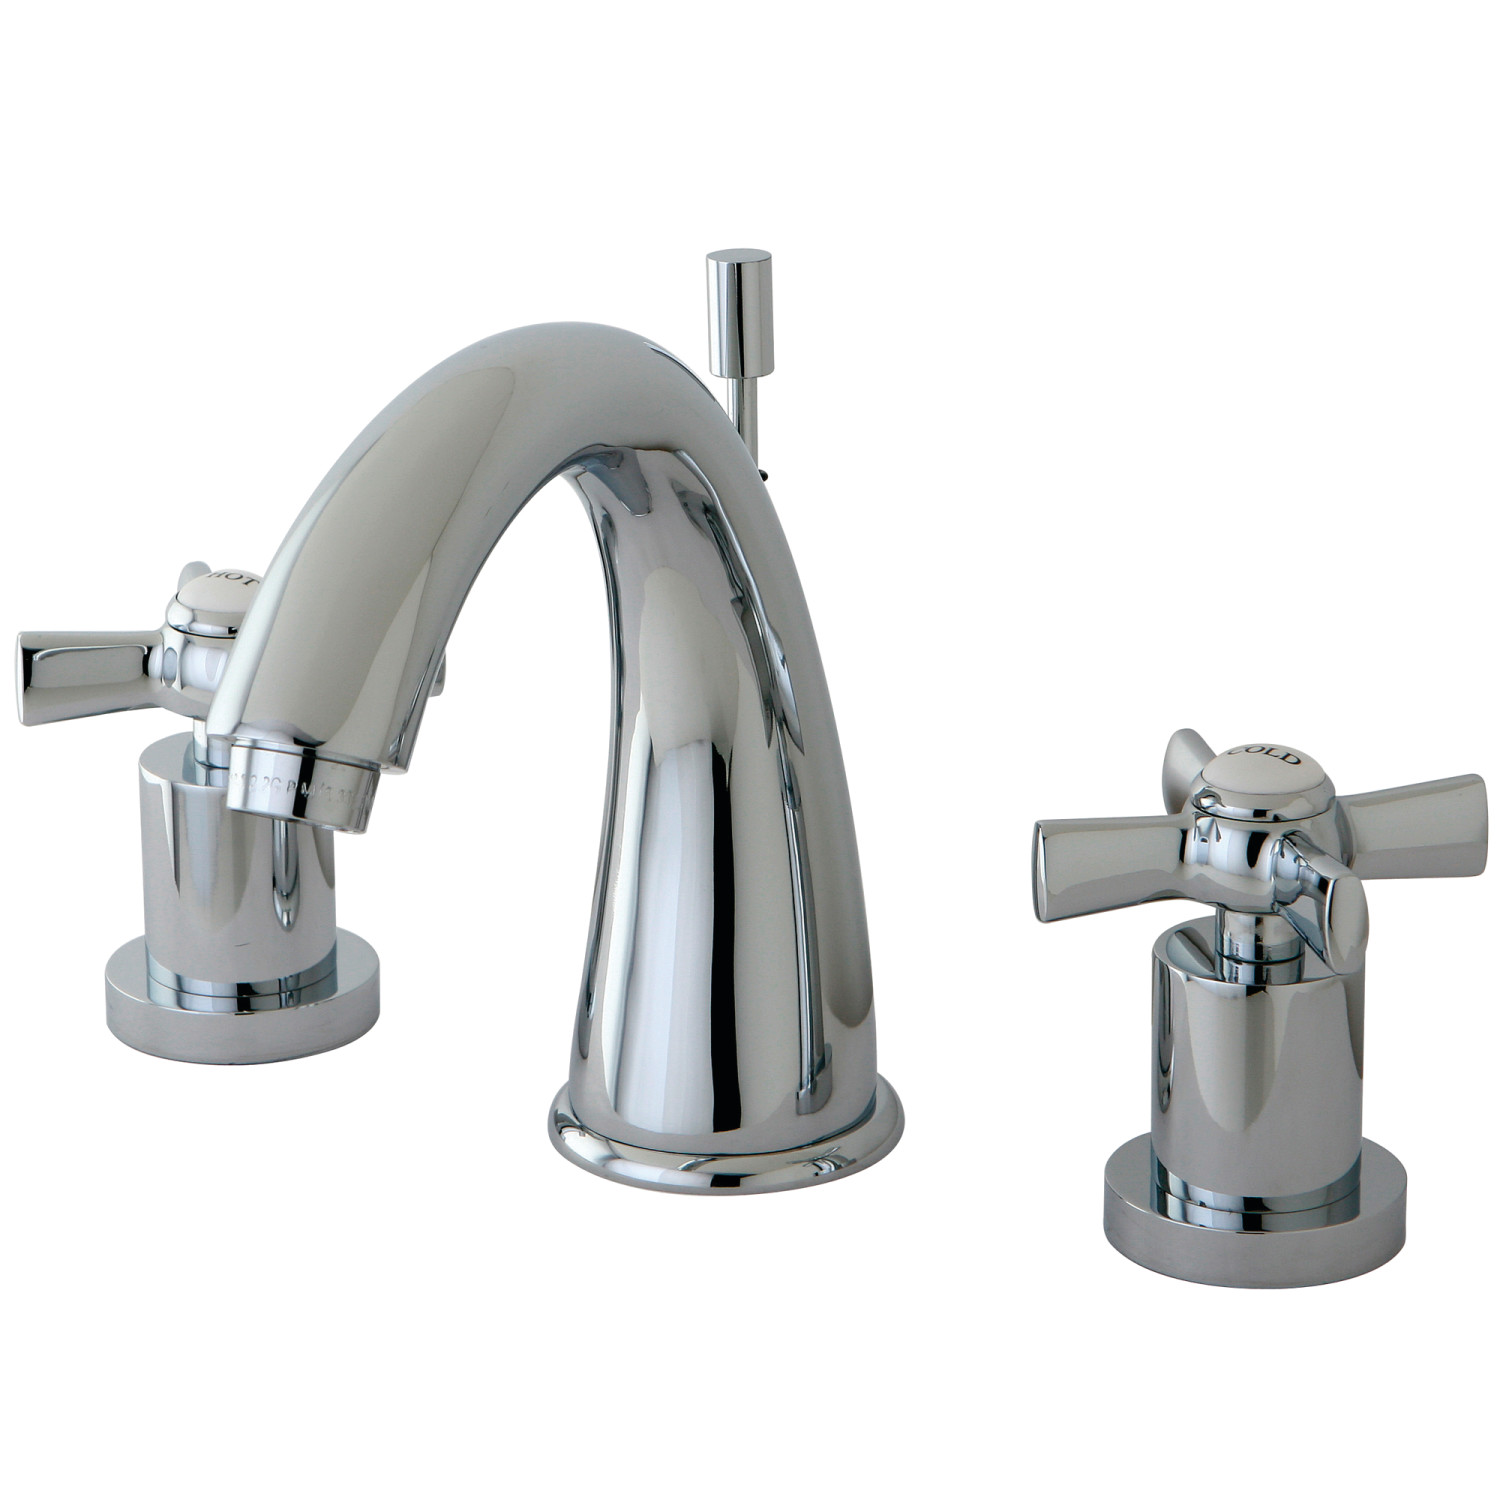 Modern Two-Handle 3-Hole Deck Mounted Widespread Bathroom Faucet with Brass Pop-Up in Polished Chrome Finish